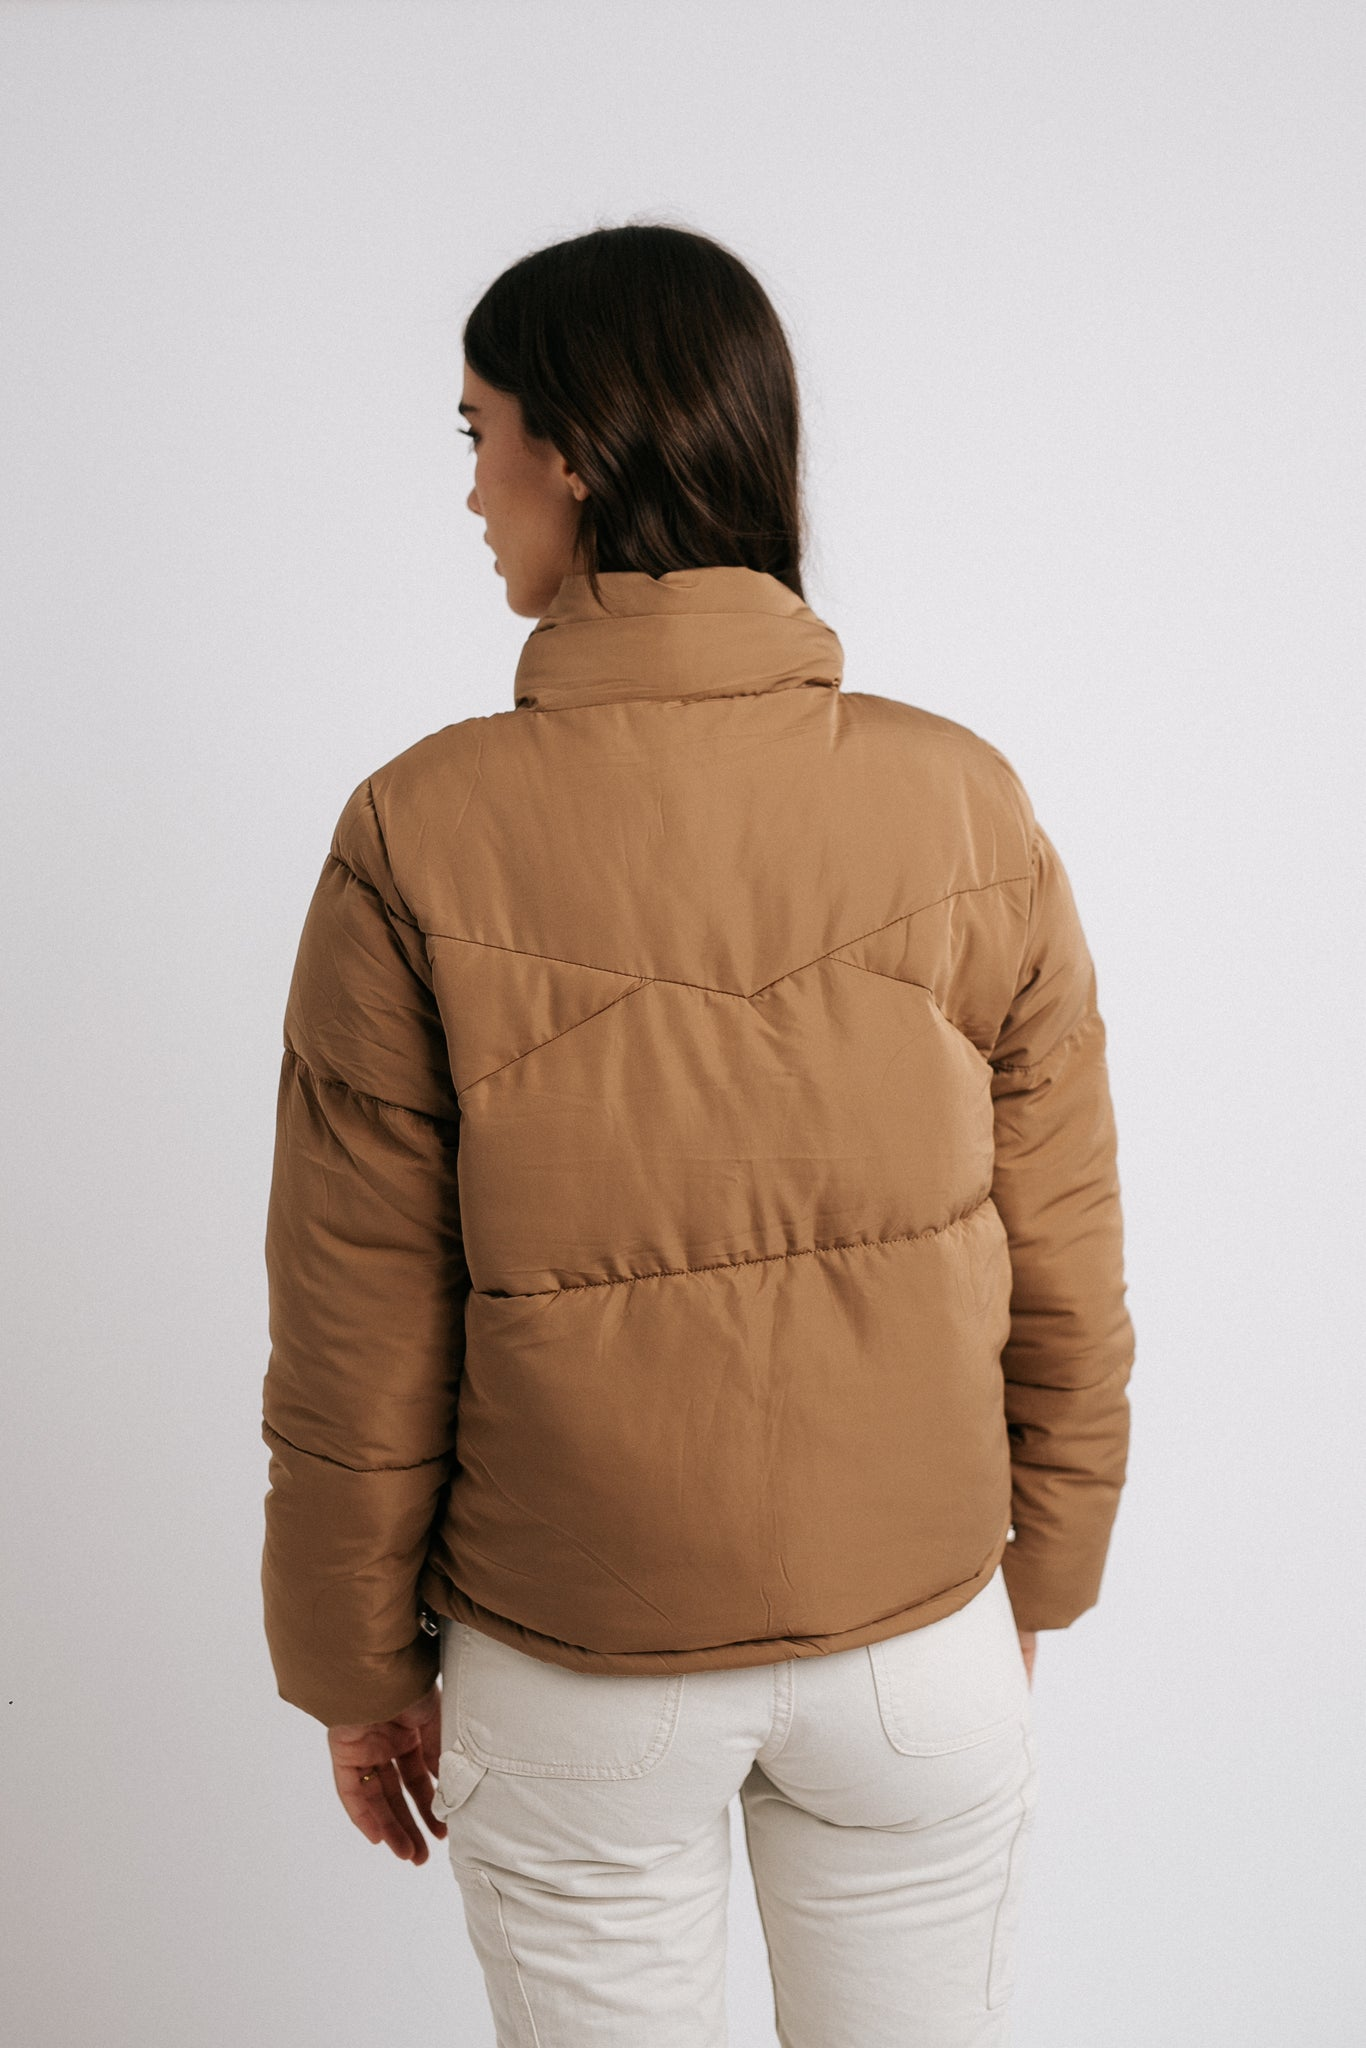 The Puffer in Camel